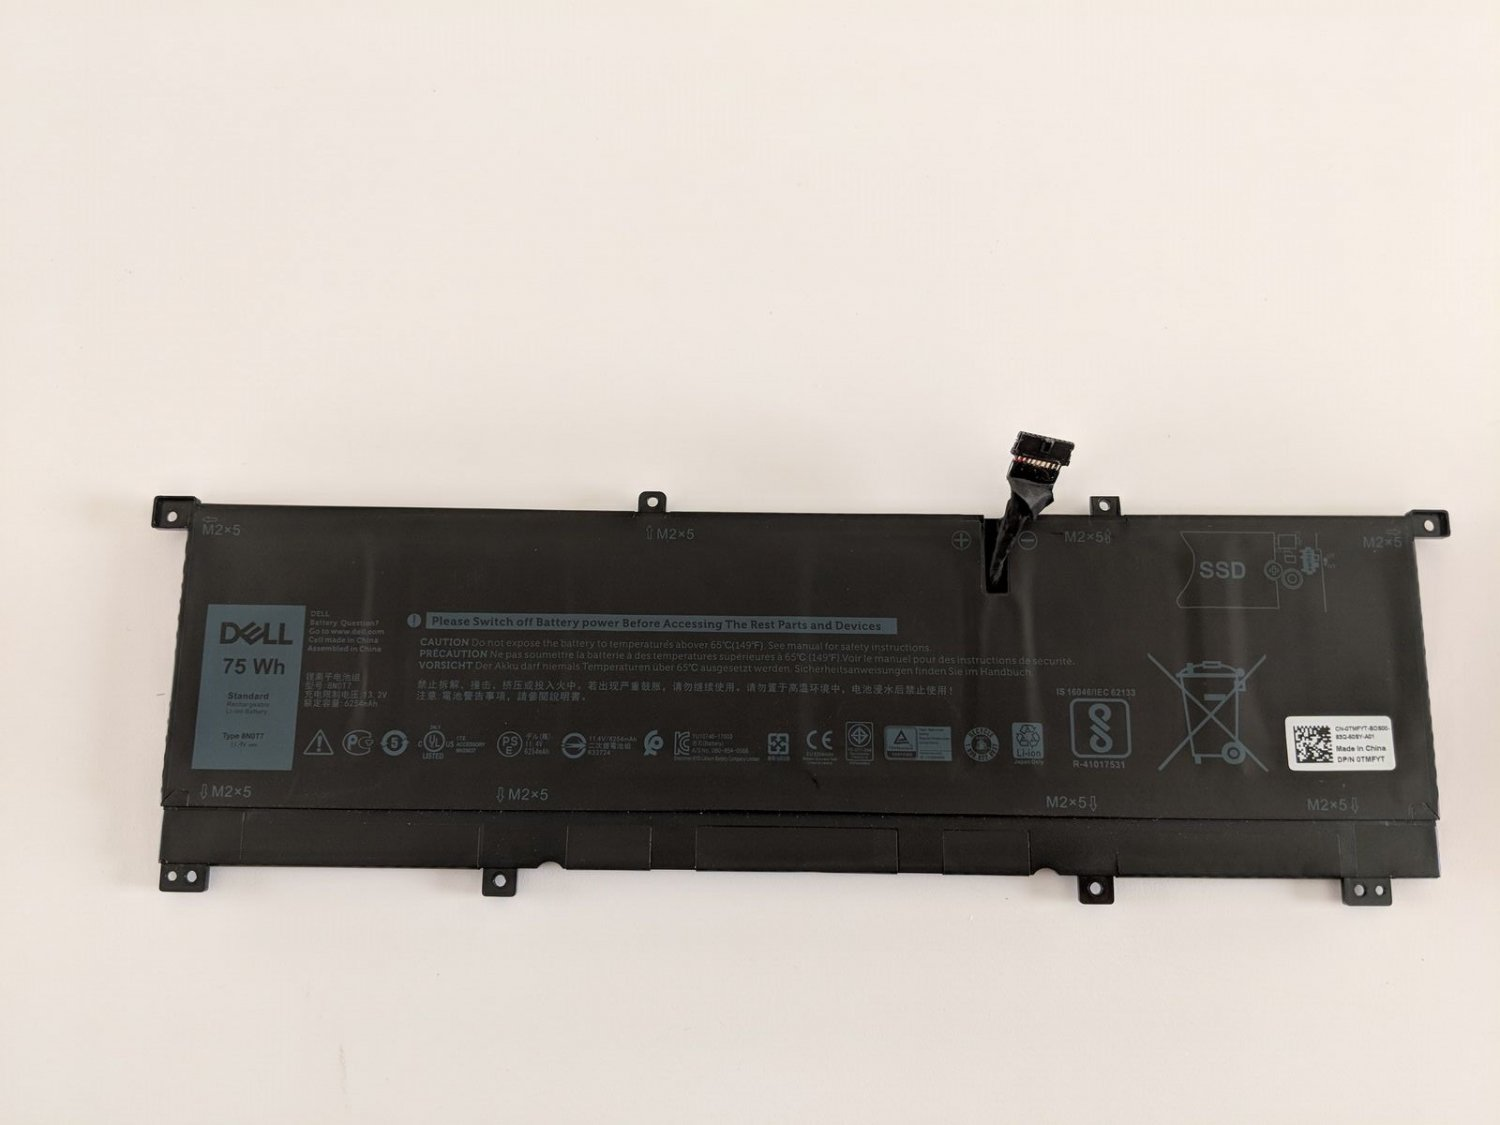 8N0T7 Dell Precision 5530 2-in-1 XPS 15-9575-D1605TS XPS 15-9575-D1805TS Battery